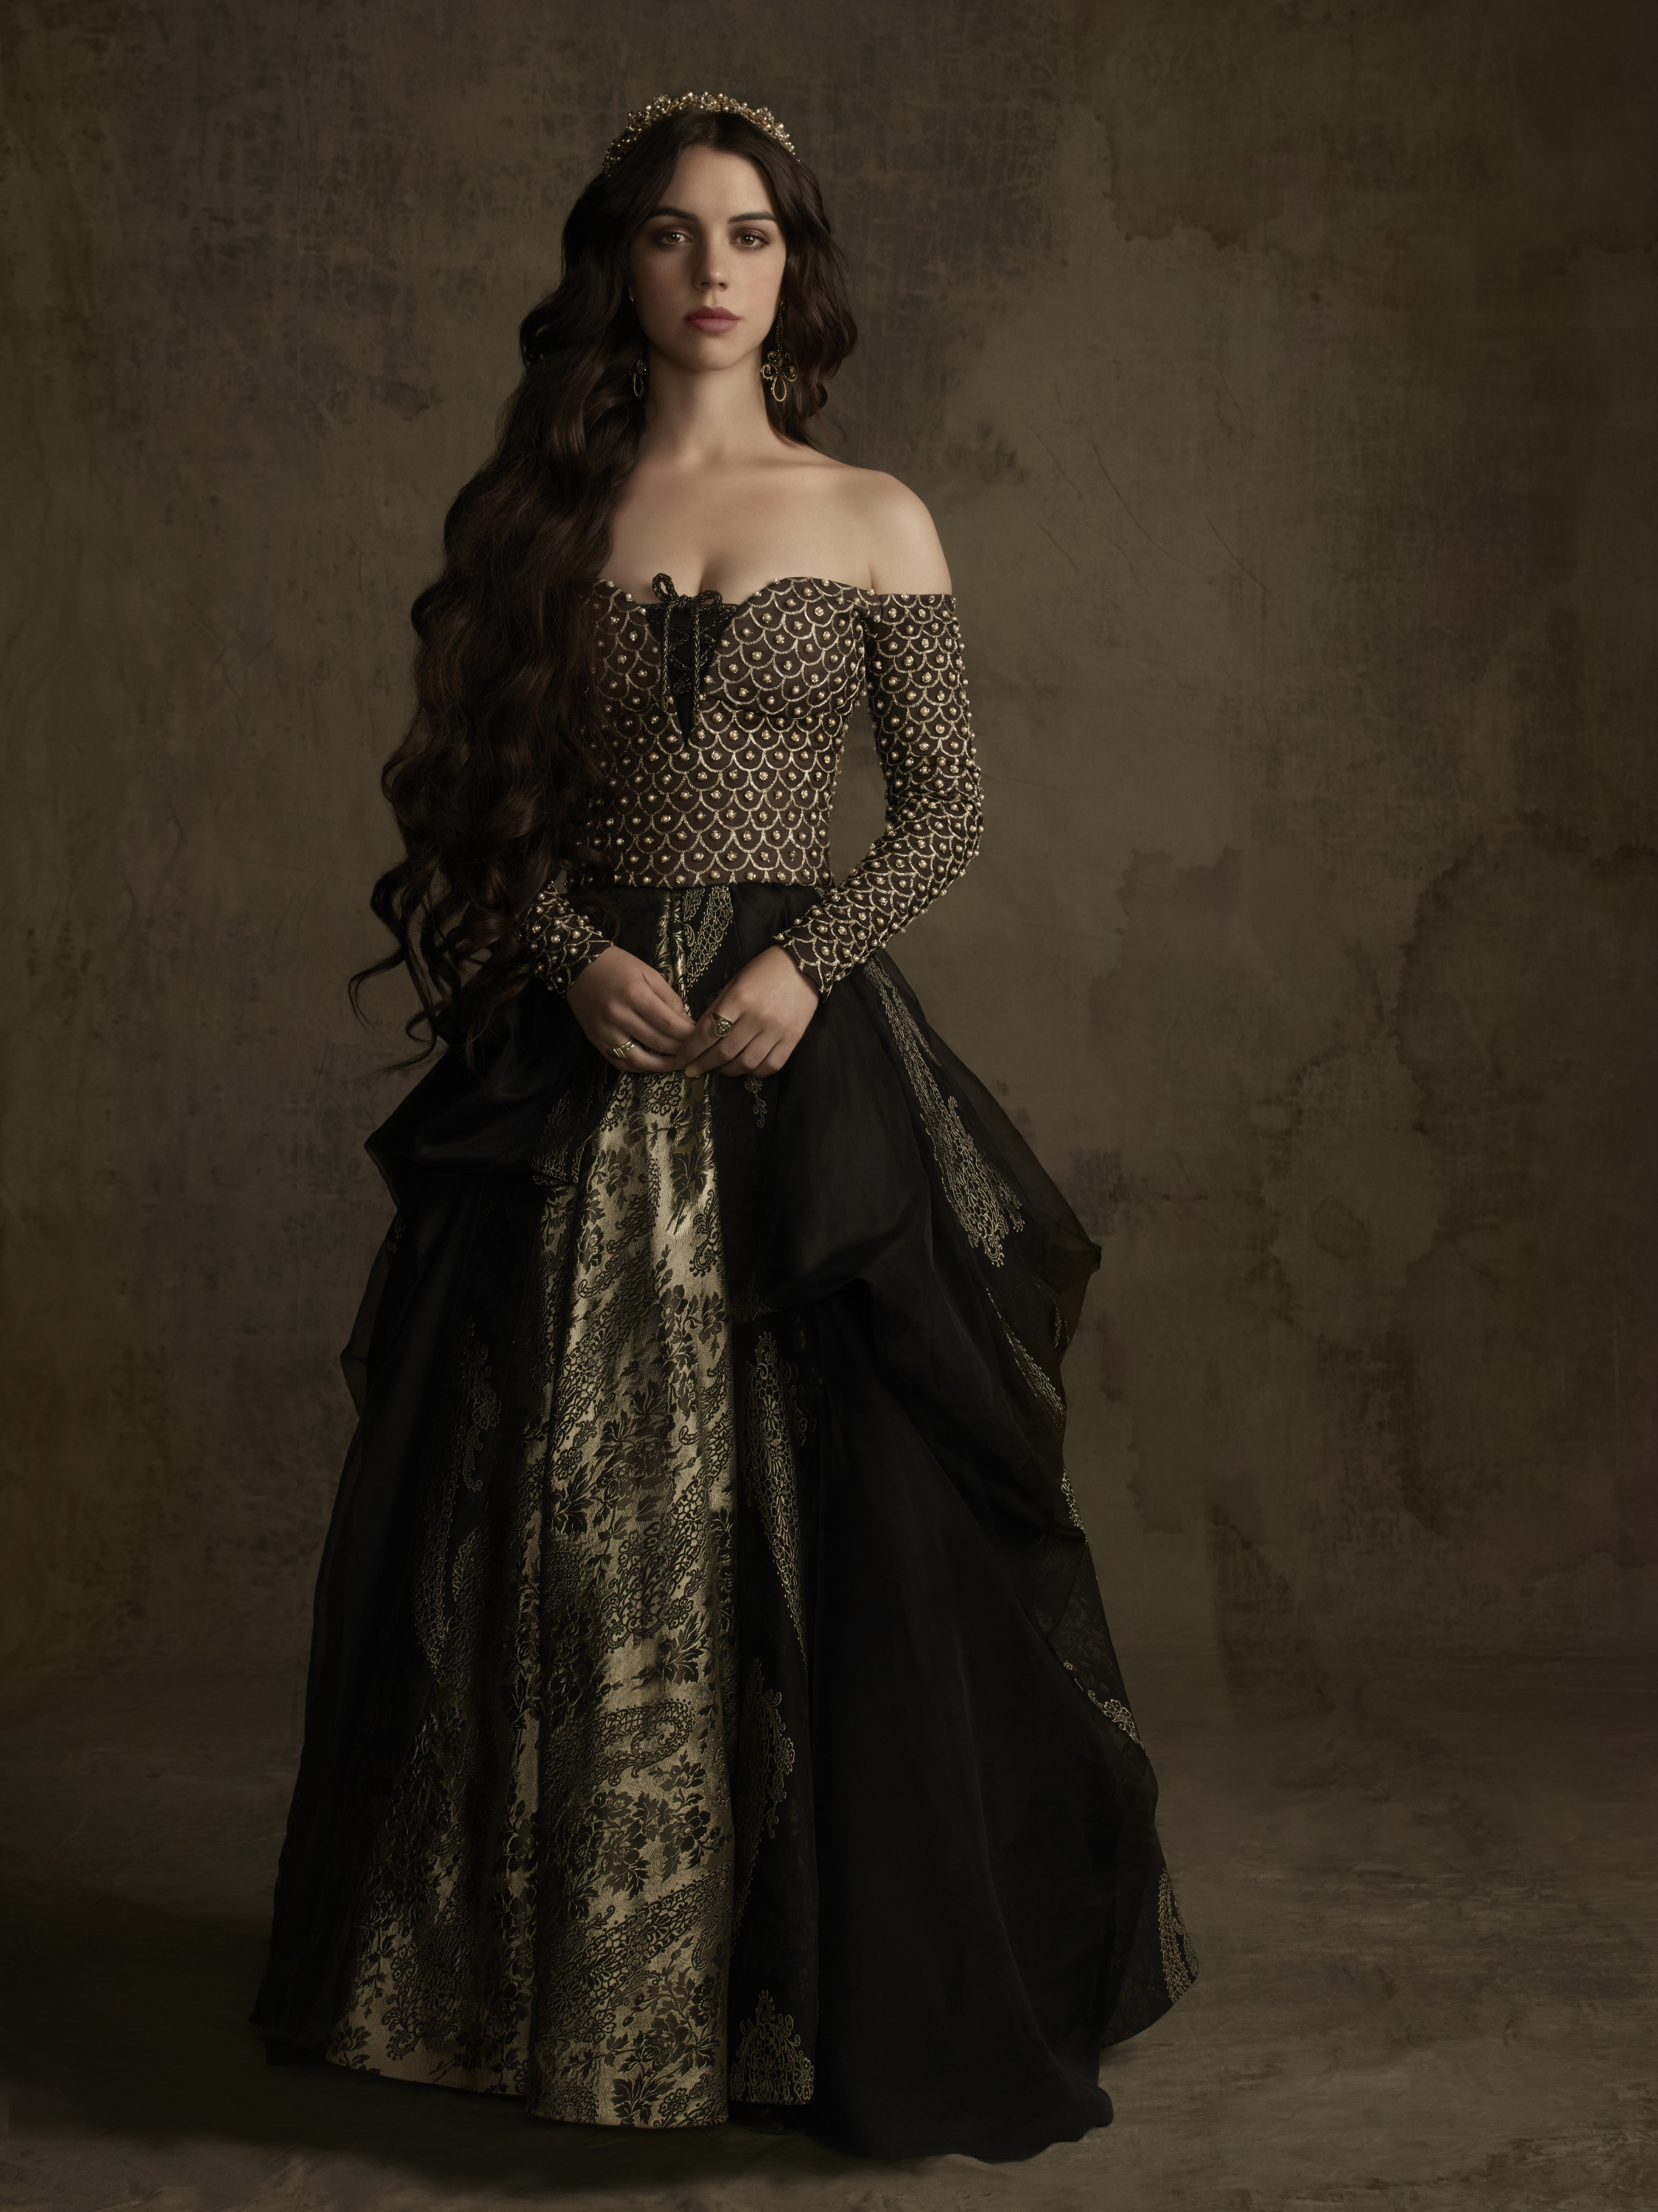 Reign Tv Show Images Mary Season 2 Official Picture Hd